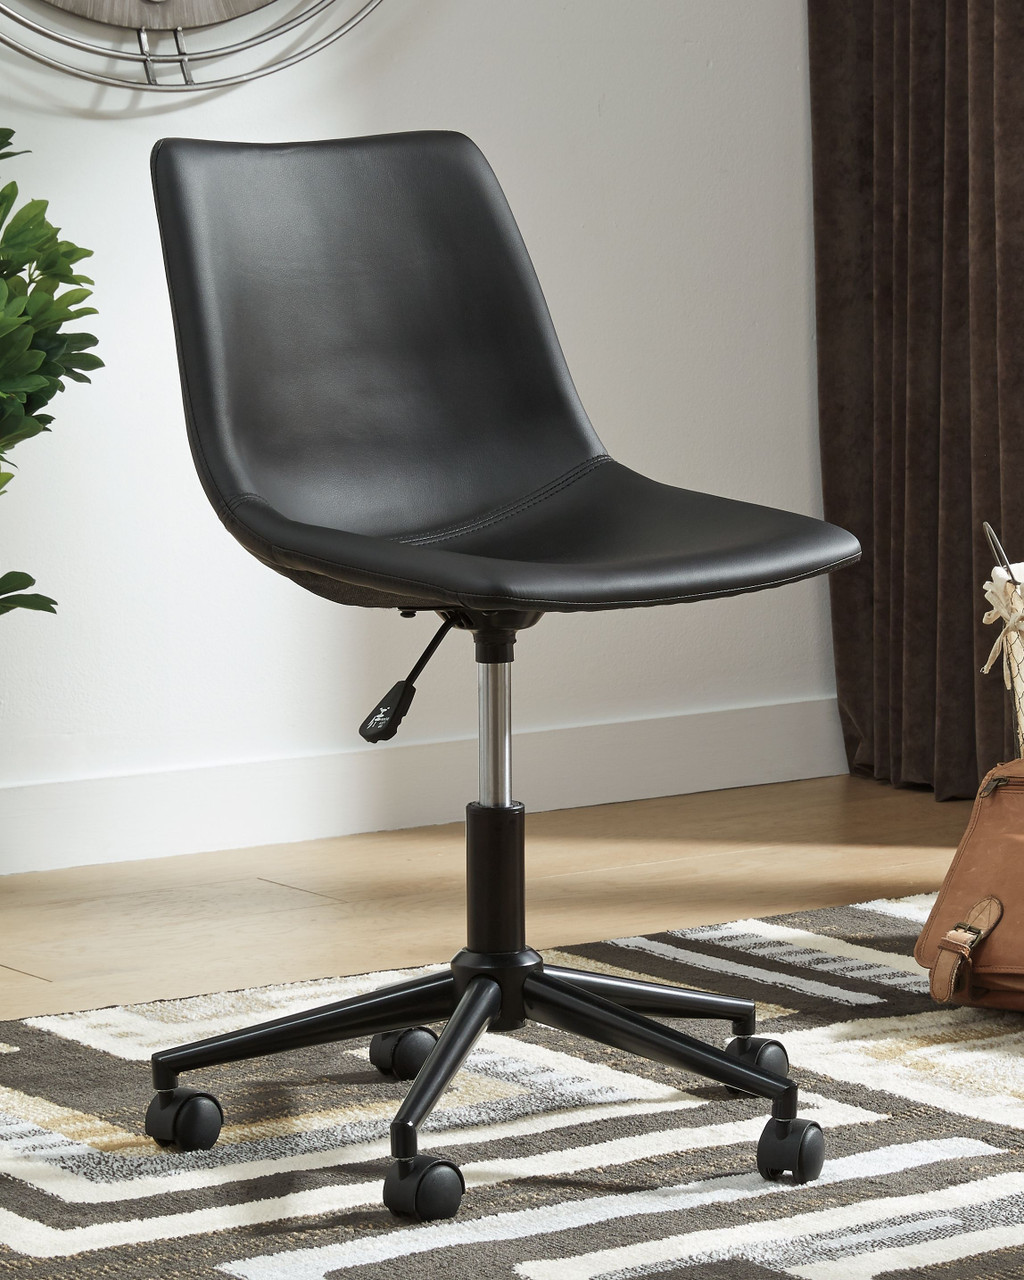 The Arlenbry Gray Home Office Small Desk Swivel Desk Chair Available At Dayton Discount Furniture Serving Vandalia Kettering And Springfield Ohio